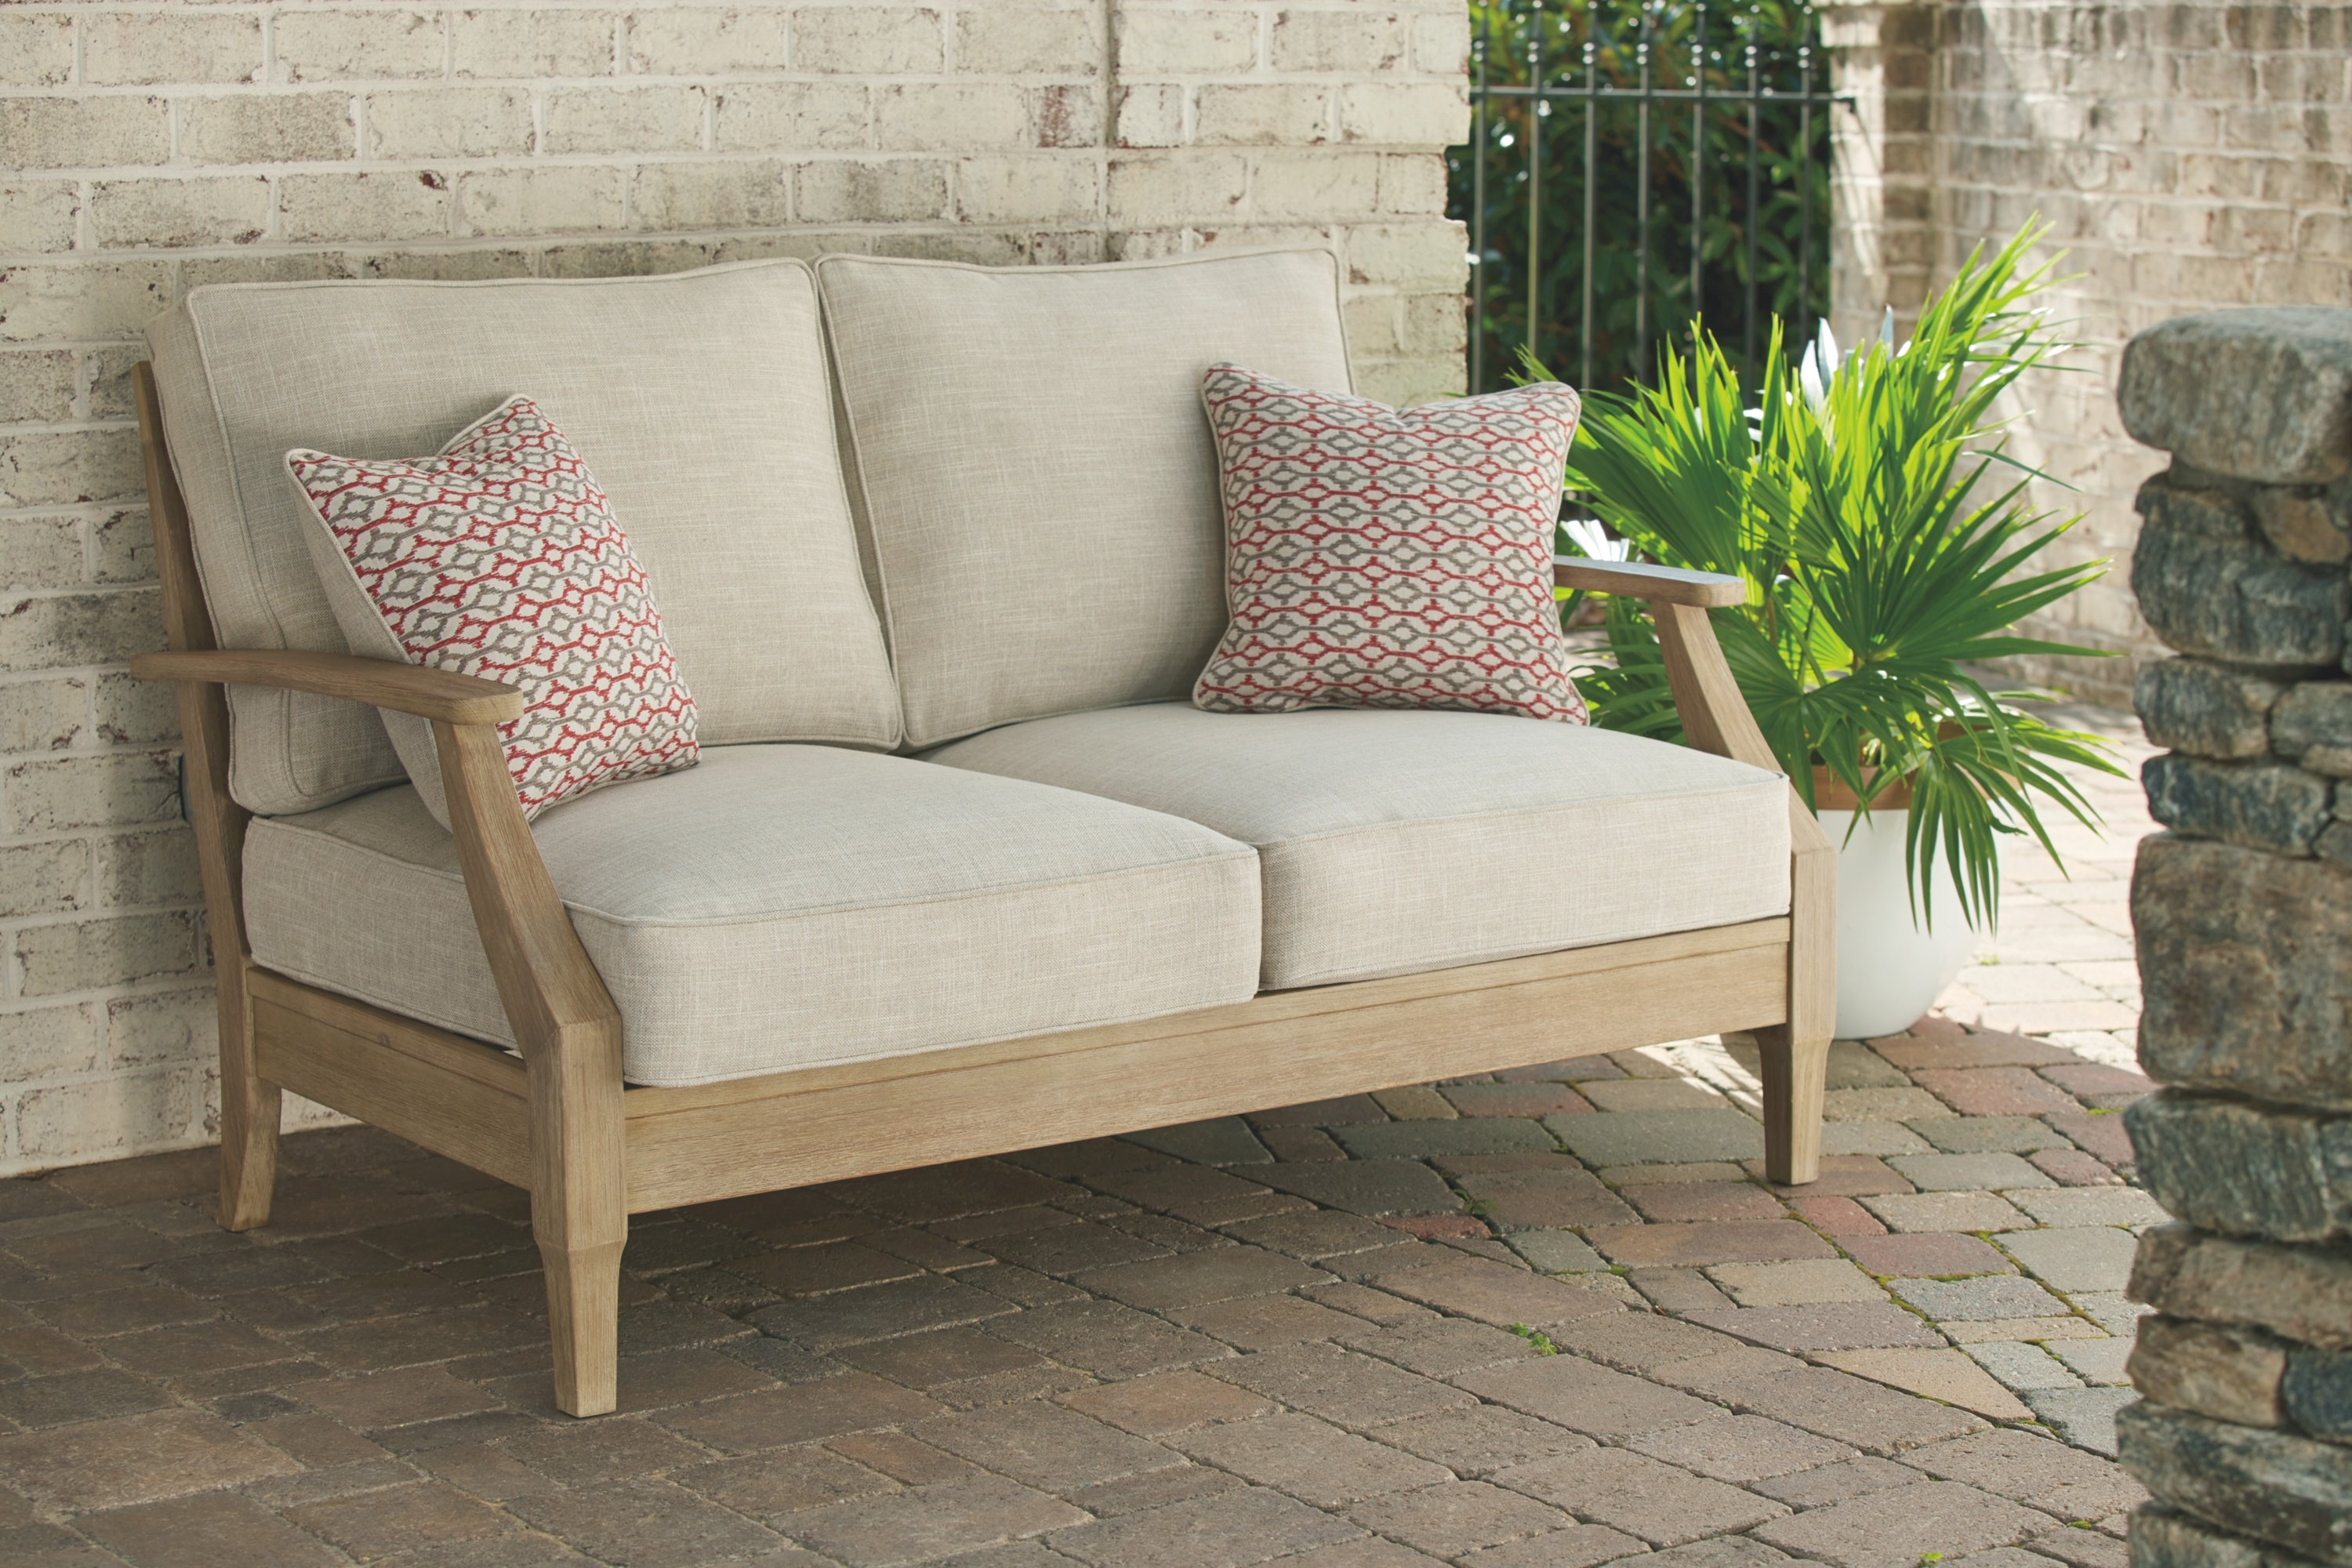 Anguiano Loveseat With Cushions For Recent Pantano Loveseats With Cushions (View 4 of 20)